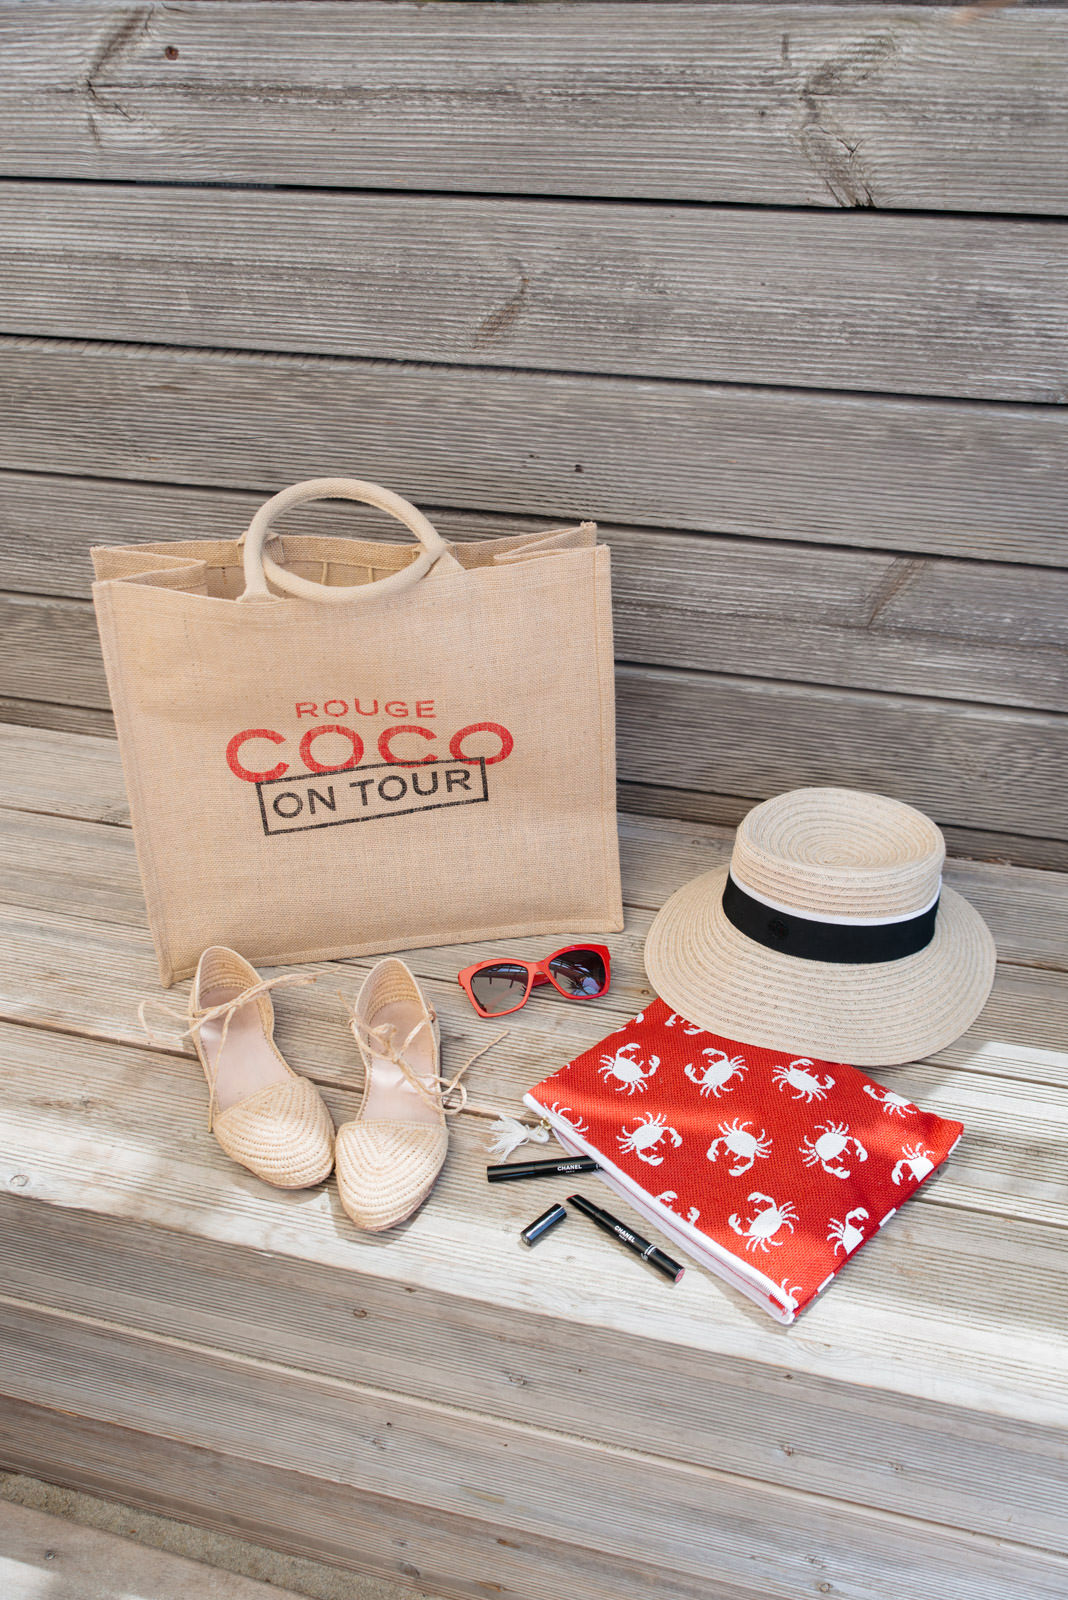 Blog-Mode-And-The-City-Lifestyle-Calvi-on-The-Rocks-avec-Chanel-7